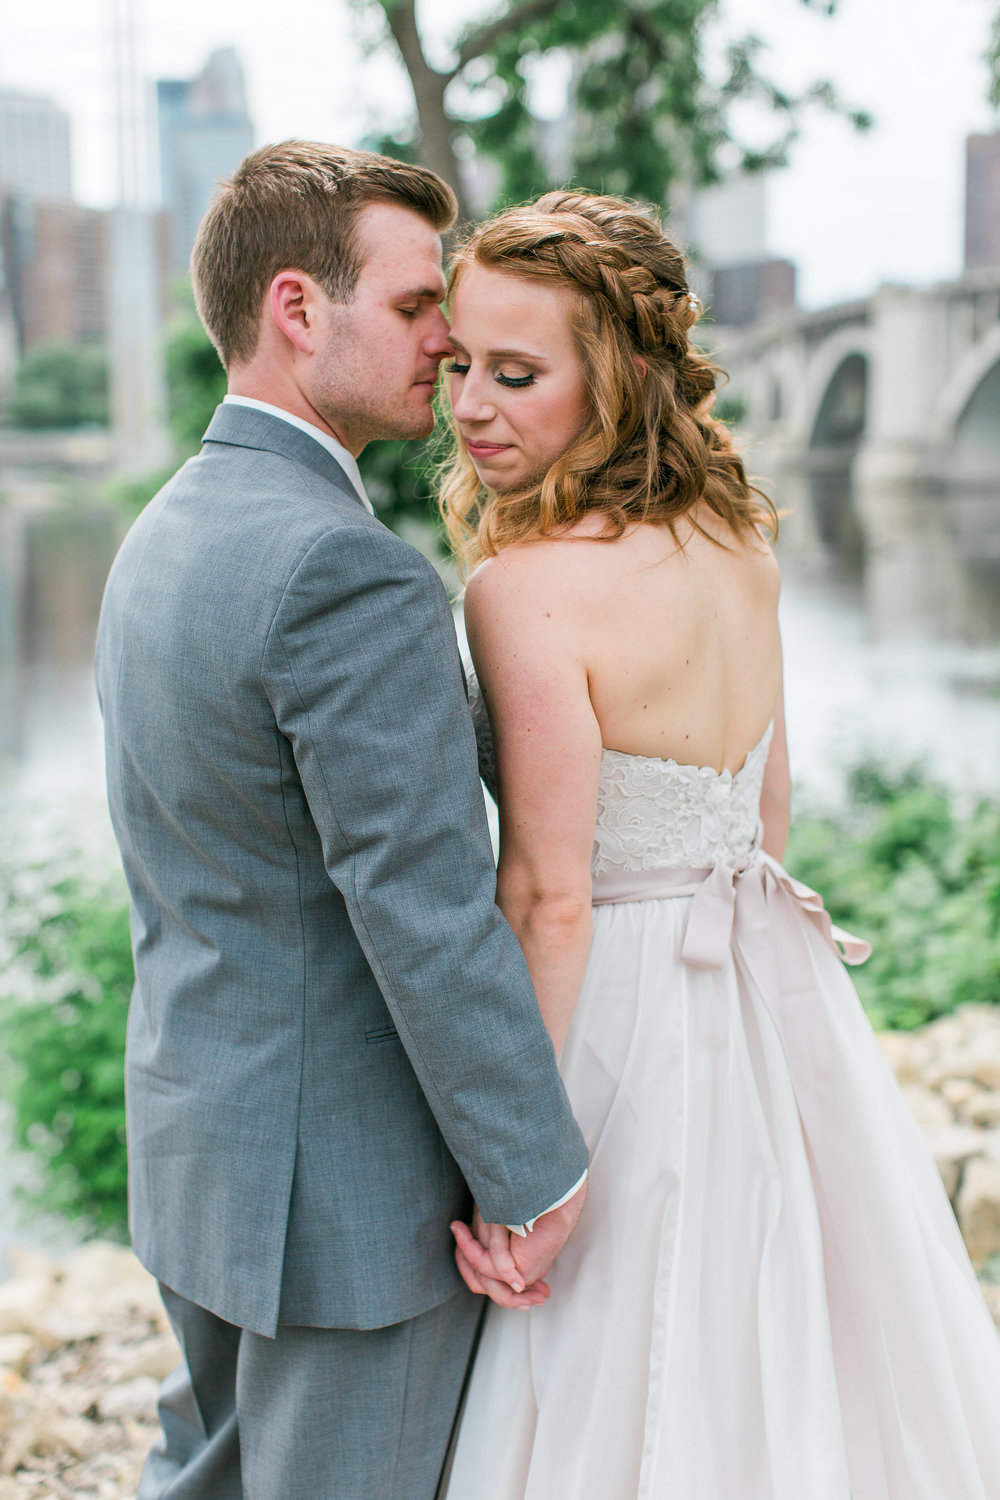 Bride and groom cuddle in front of Minneapolis skyline on St. Anthony Main during summer wedding at Minneapolis Event Centers